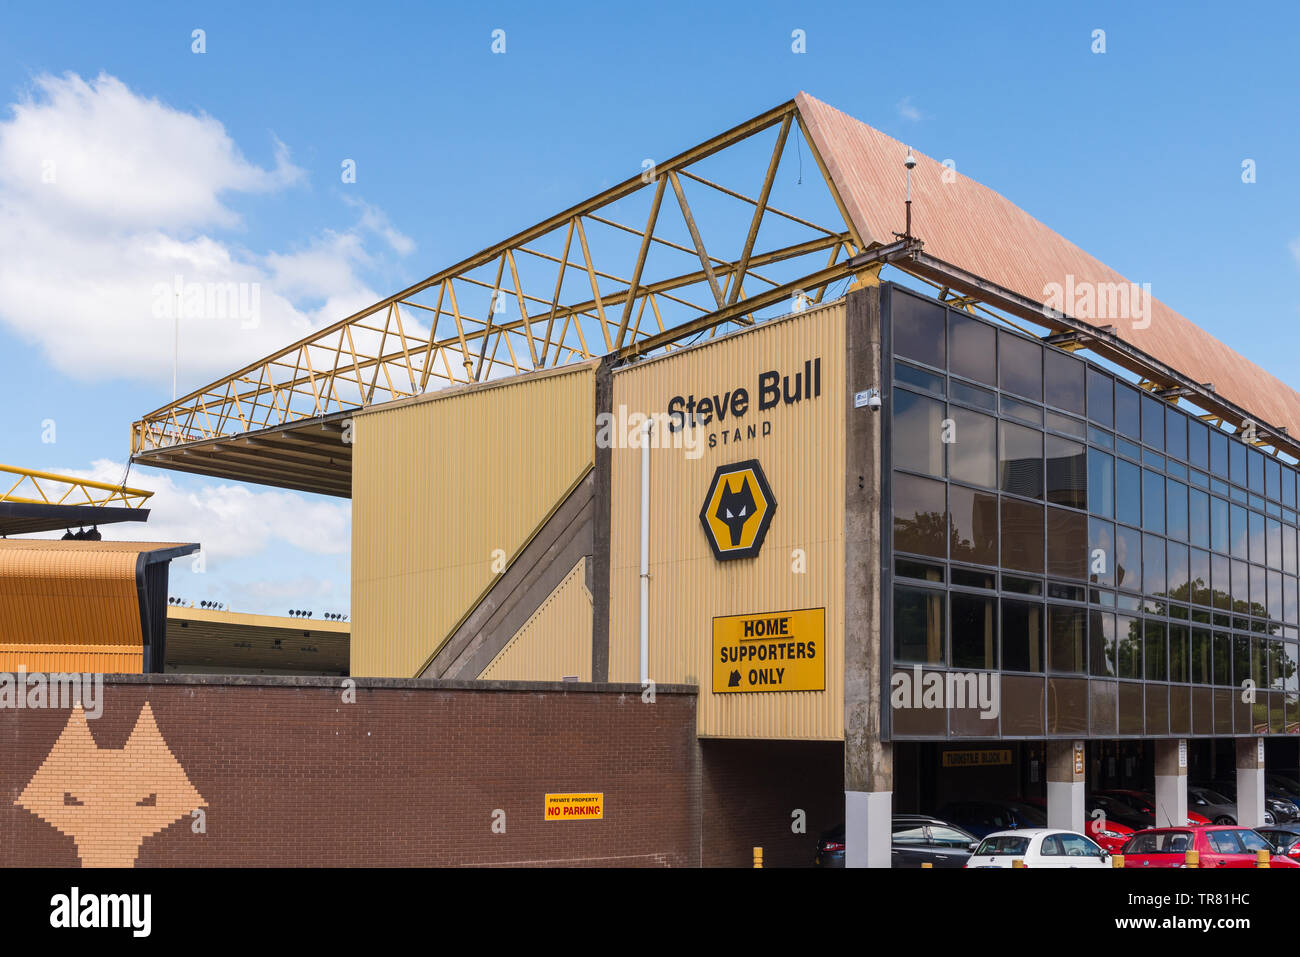 The Steve Bull stand at the Molineux, home of Wolverhampton Wanders Football Club - Stock Image